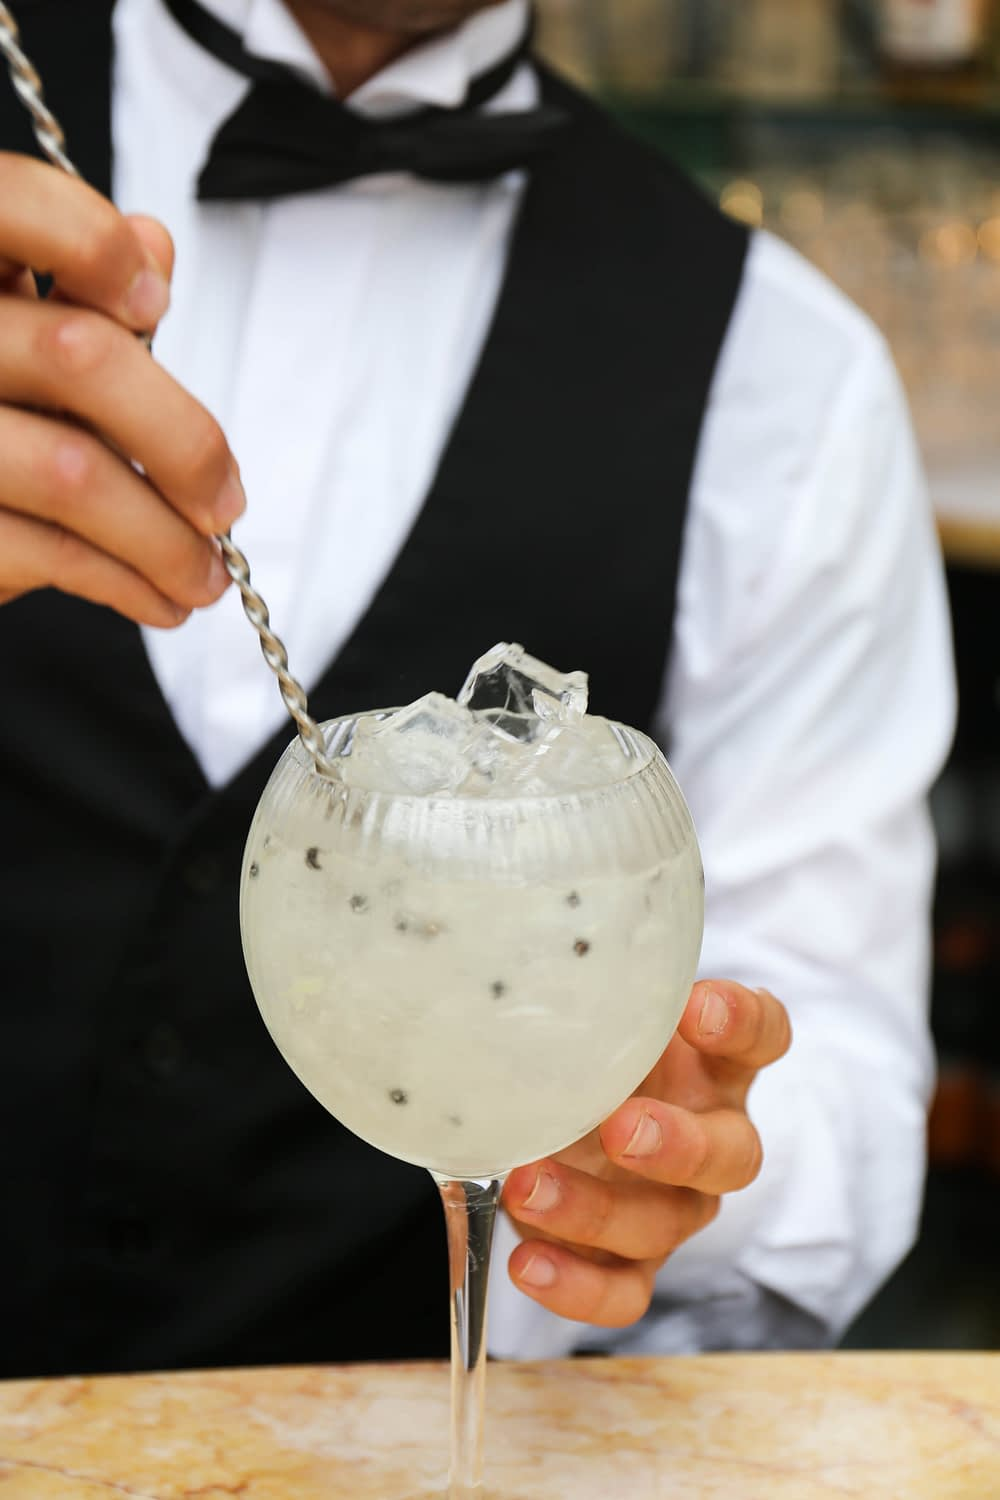 Royal Fizz Cove Vodka Cocktail being made at Burgh Island